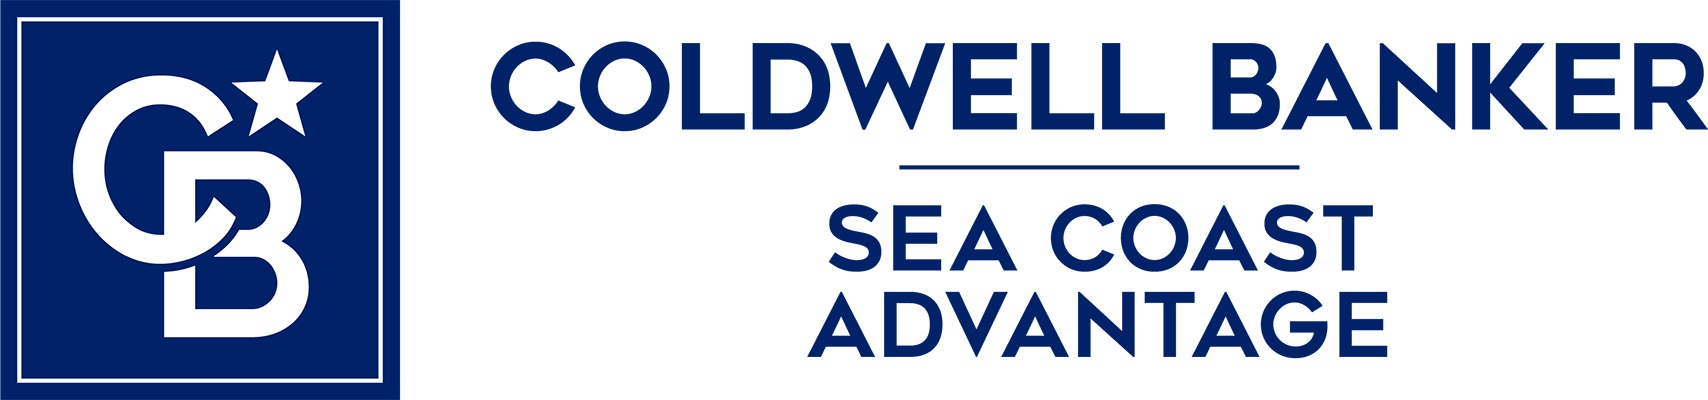 Tracy Schwartz - Coldwell Banker Sea Coast Advantage Realty